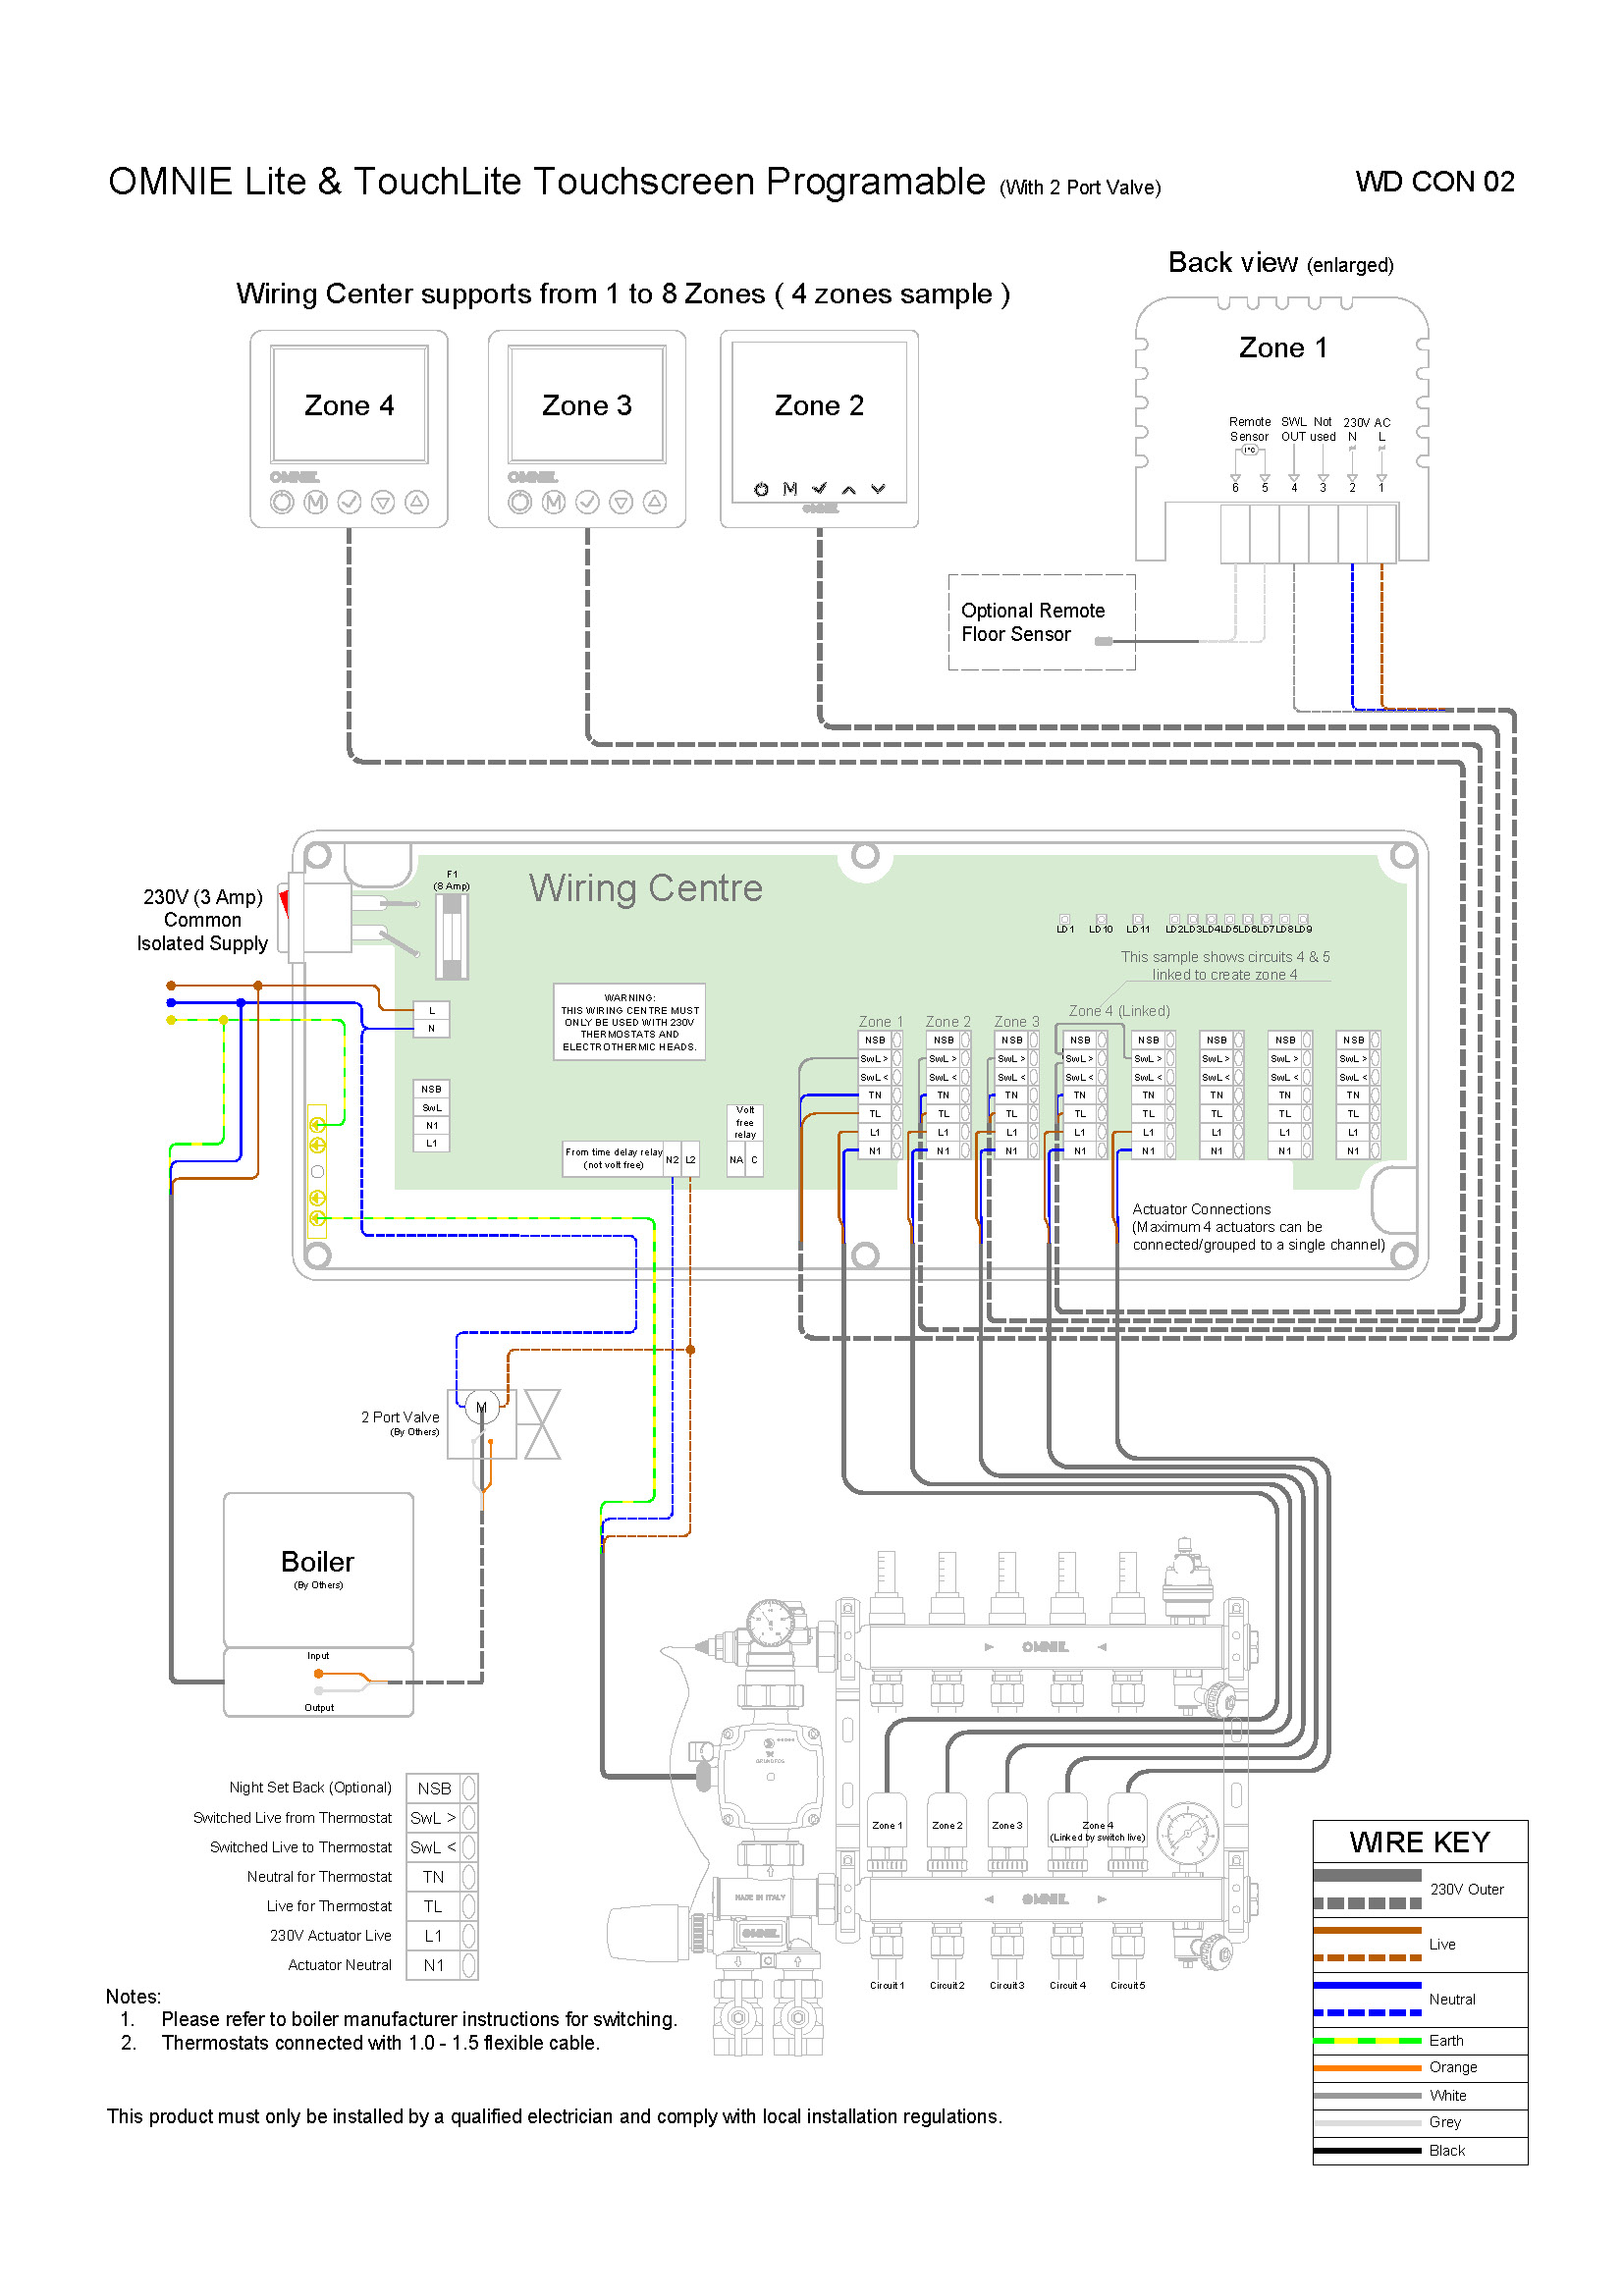 Omnie Lite Programmable Thermostat  U2013 Wiring Diagram  U2013 Omnie Underfloor Heating  Heat Pumps